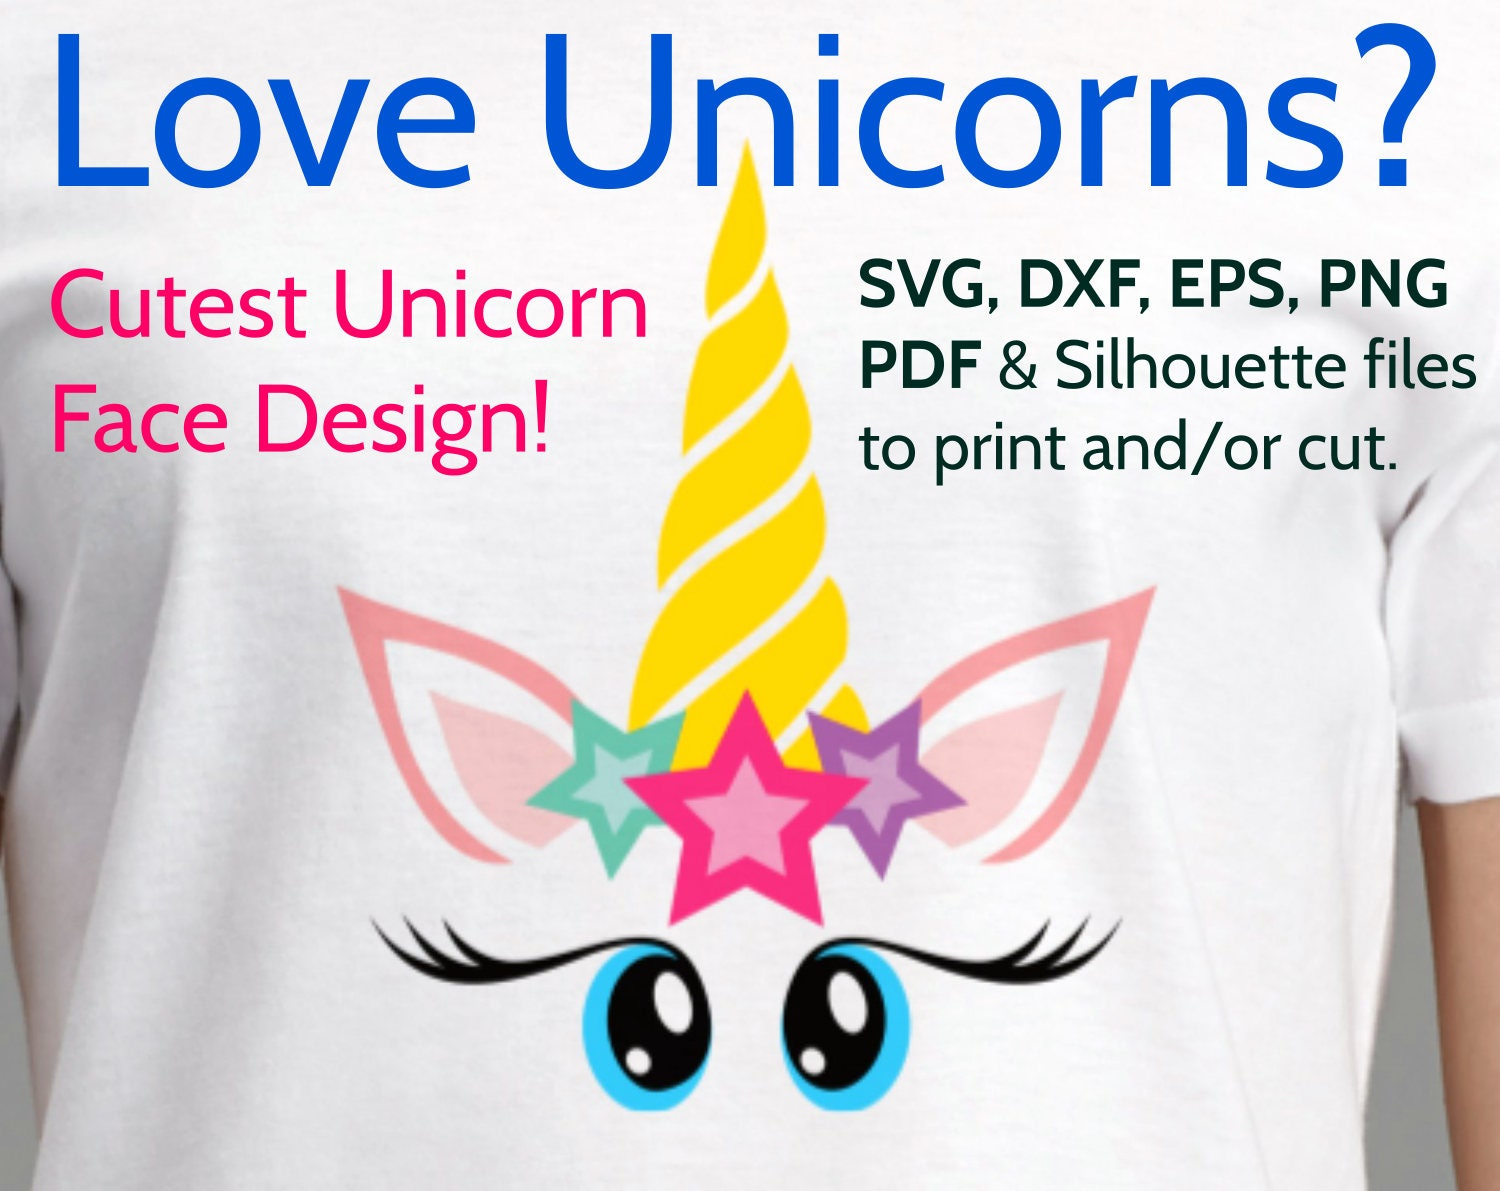 View Unicorn Love Silhouette Svg Design